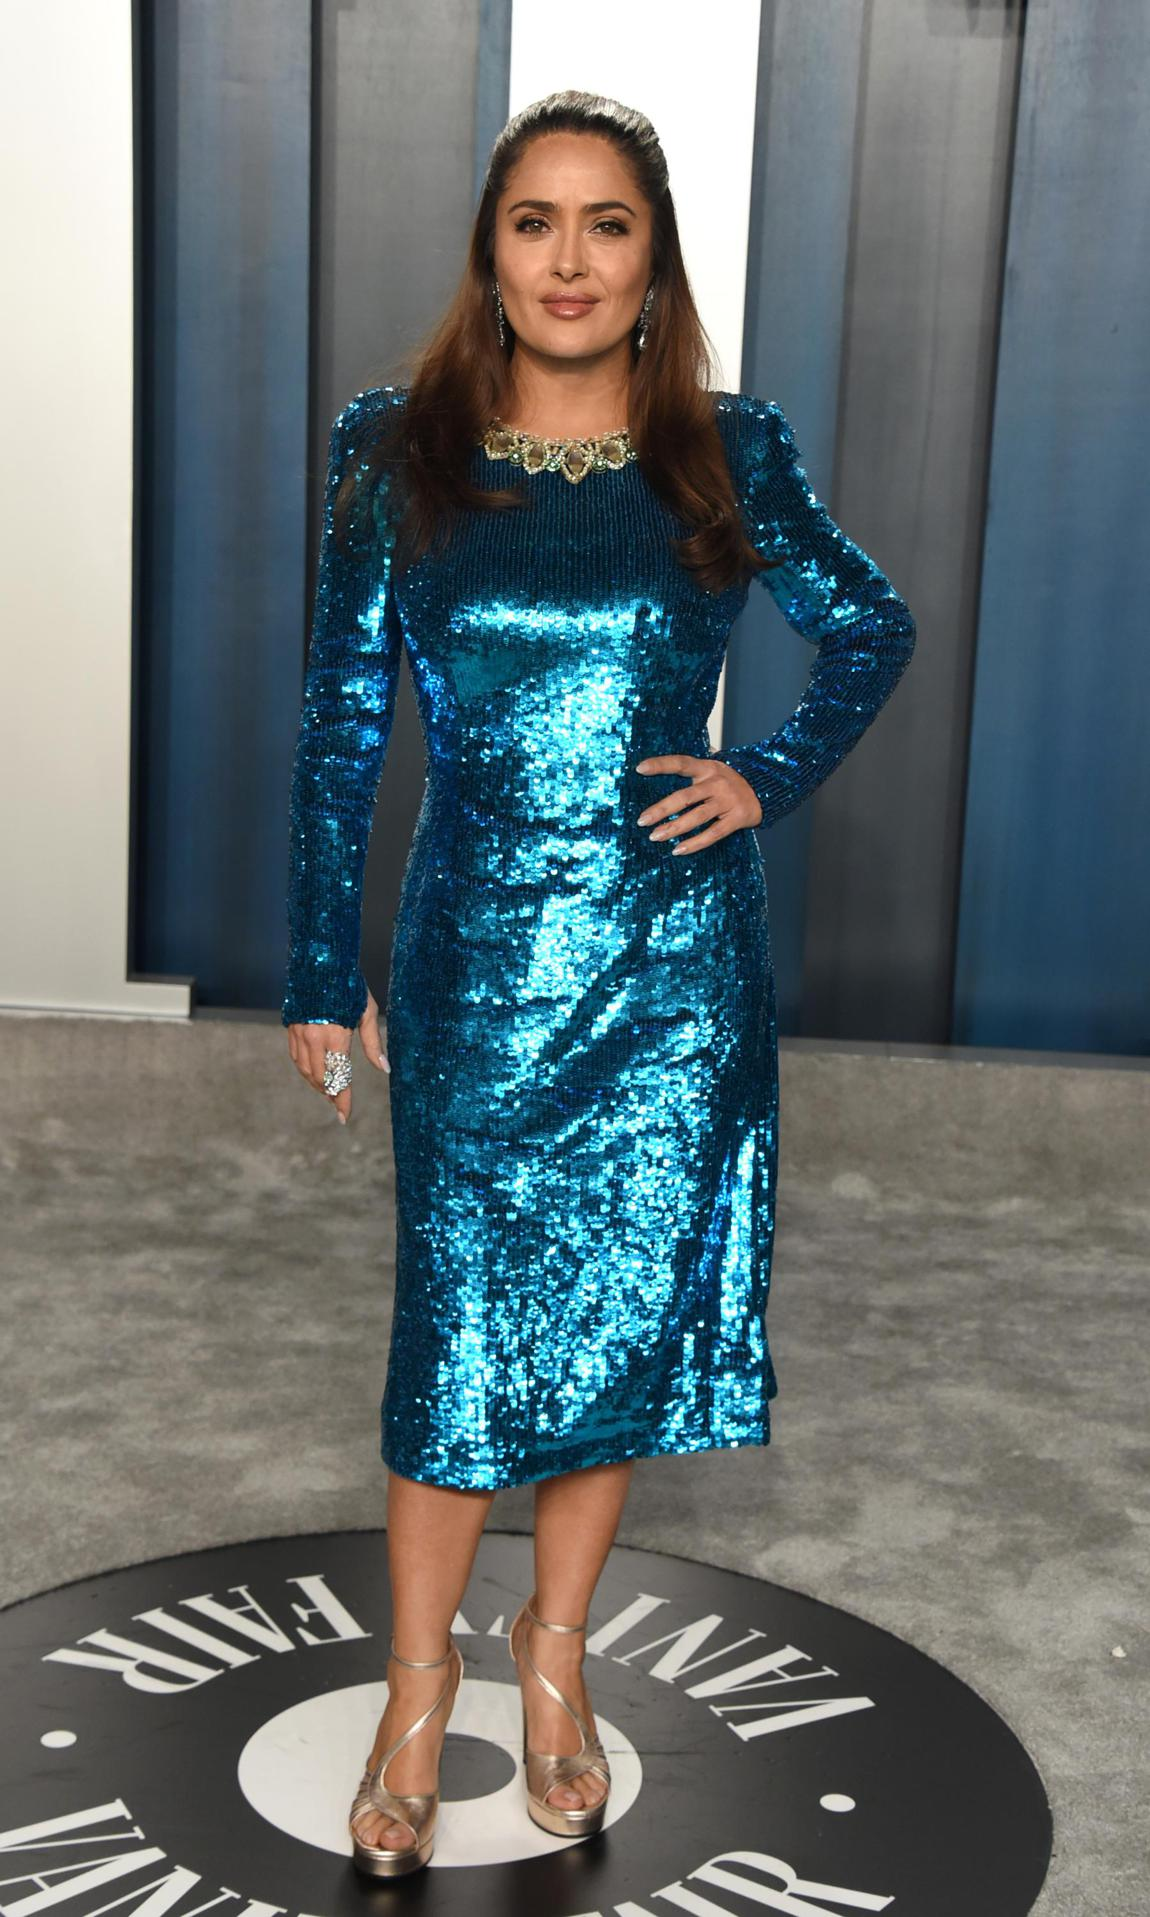 Salma Hayek at Vanity Fair's Oscar after-party prior visit to the hospital